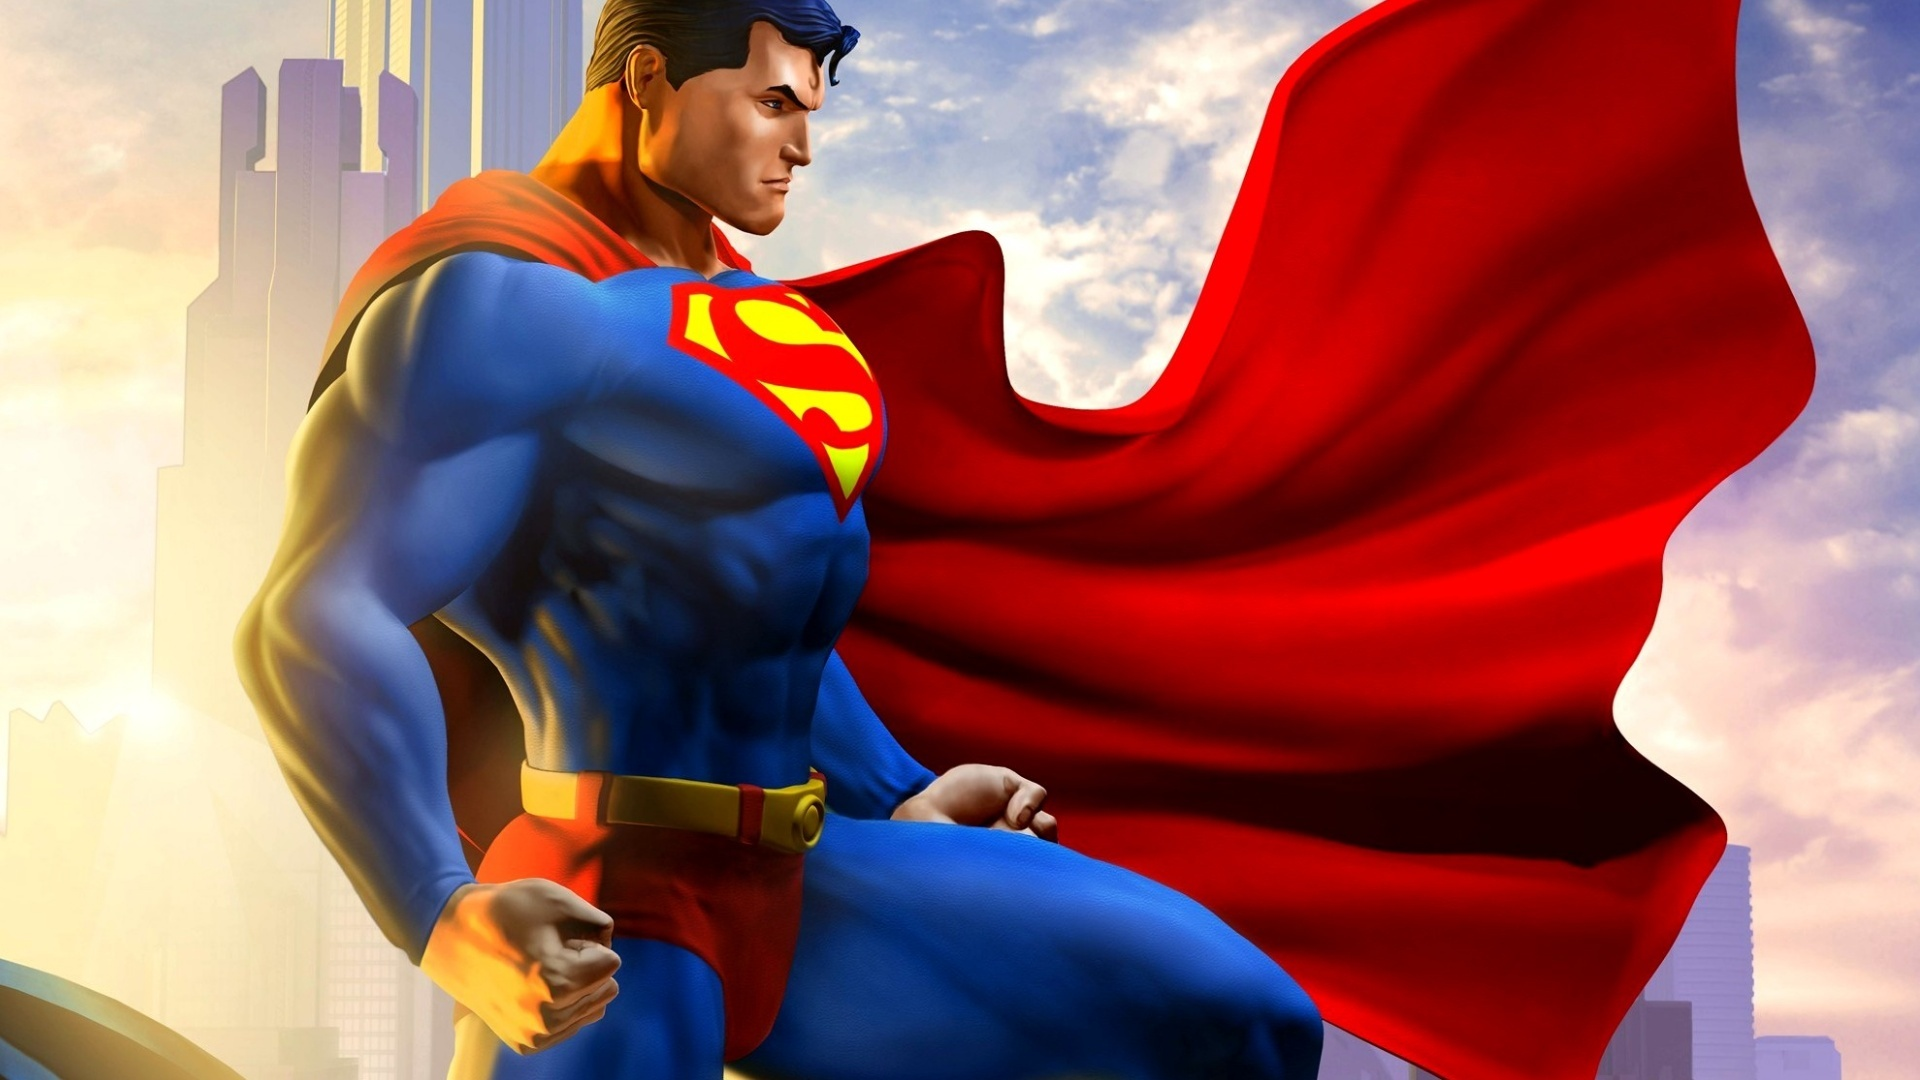 random heros images superman (wallpaper) hd wallpaper and background